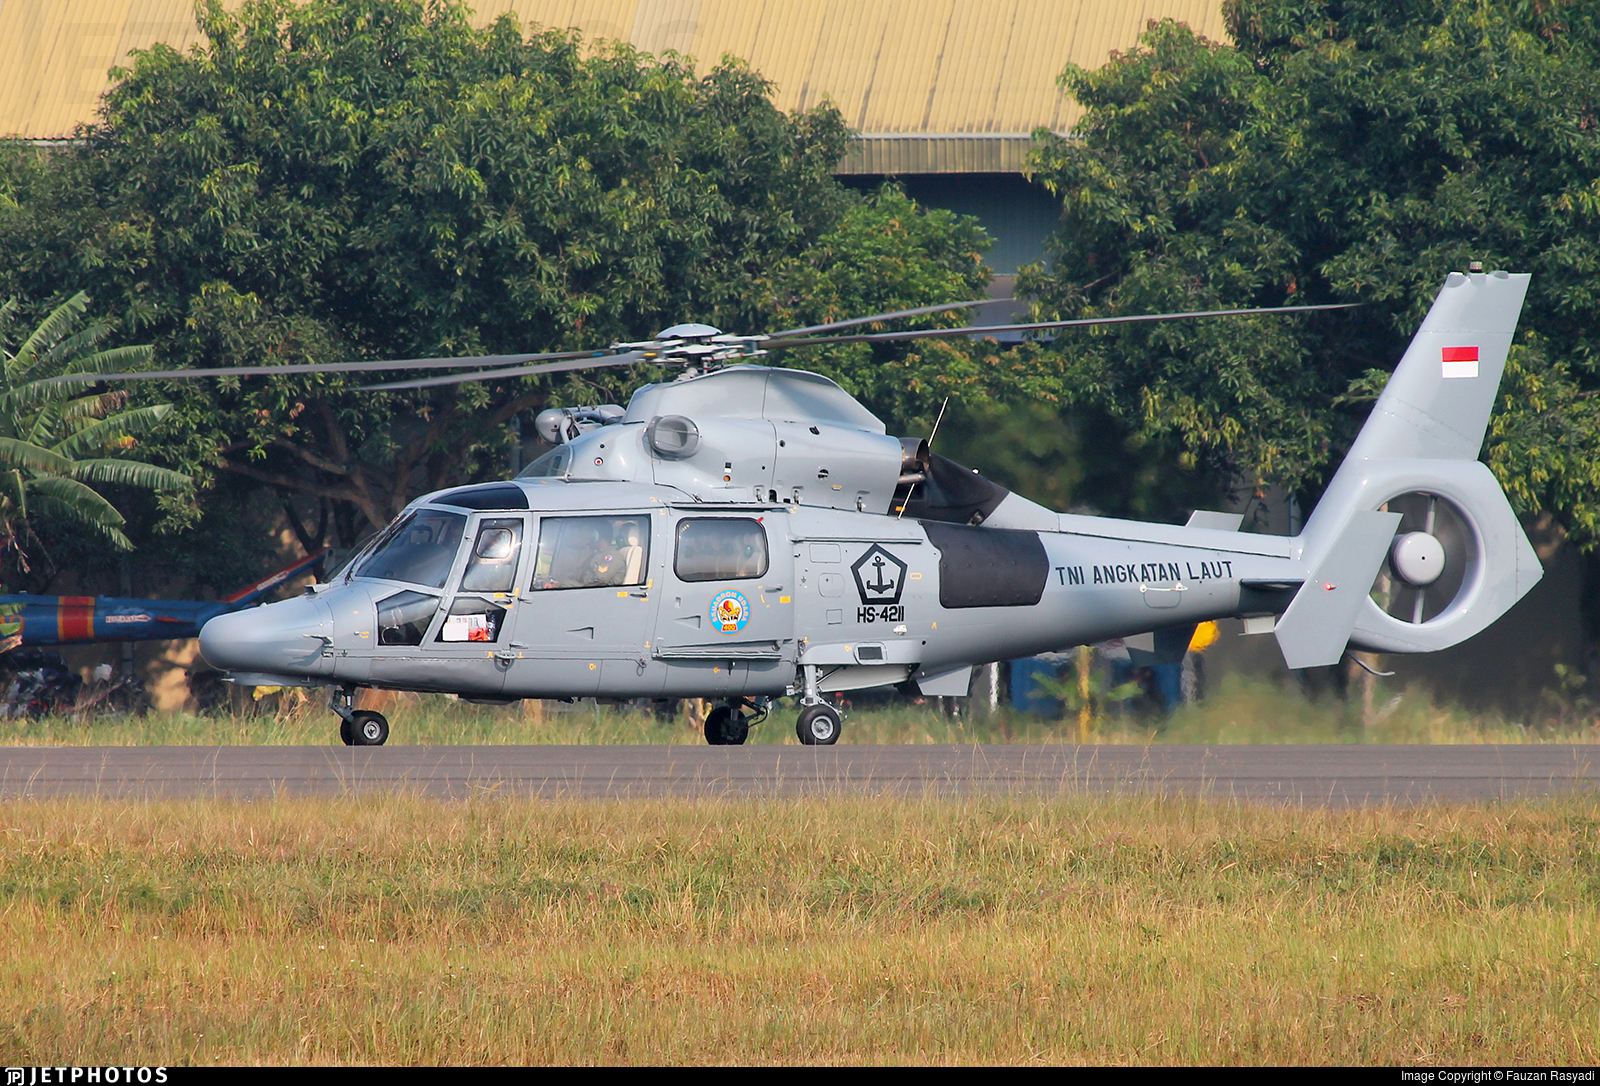 HS-4211 - Eurocopter AS-565MBe Panther  - Indonesia - Naval Air Arm